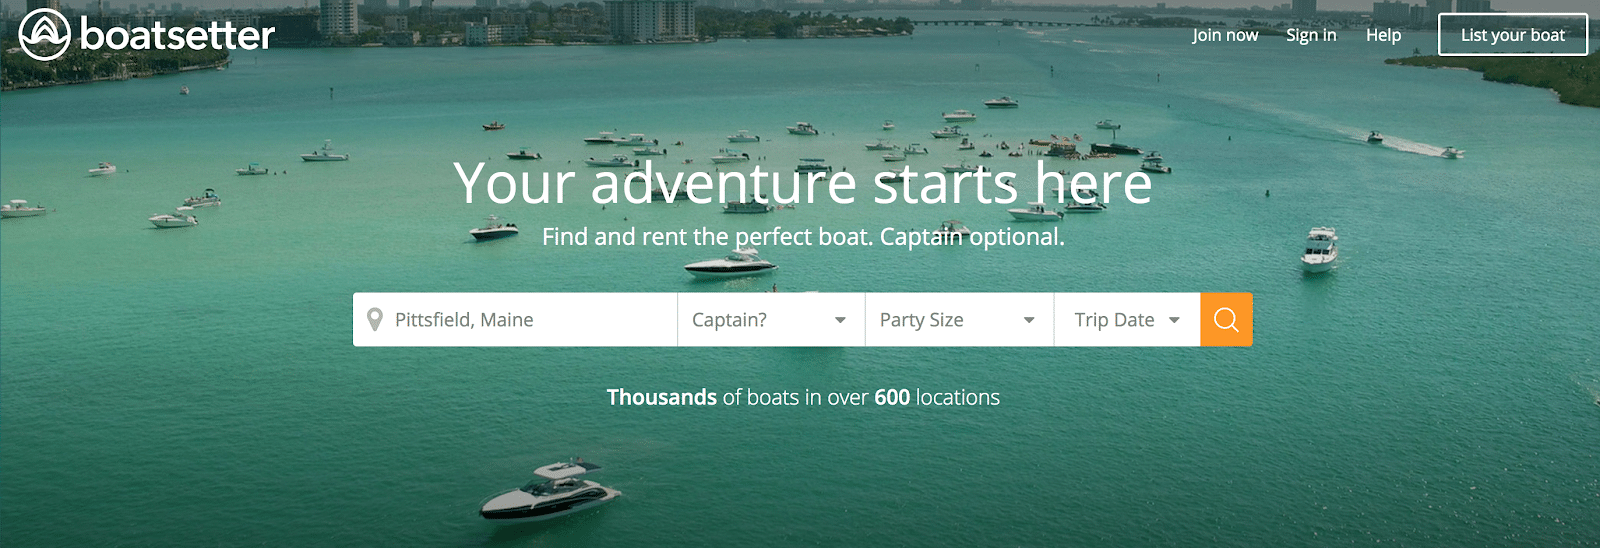 Boatsetter homepage